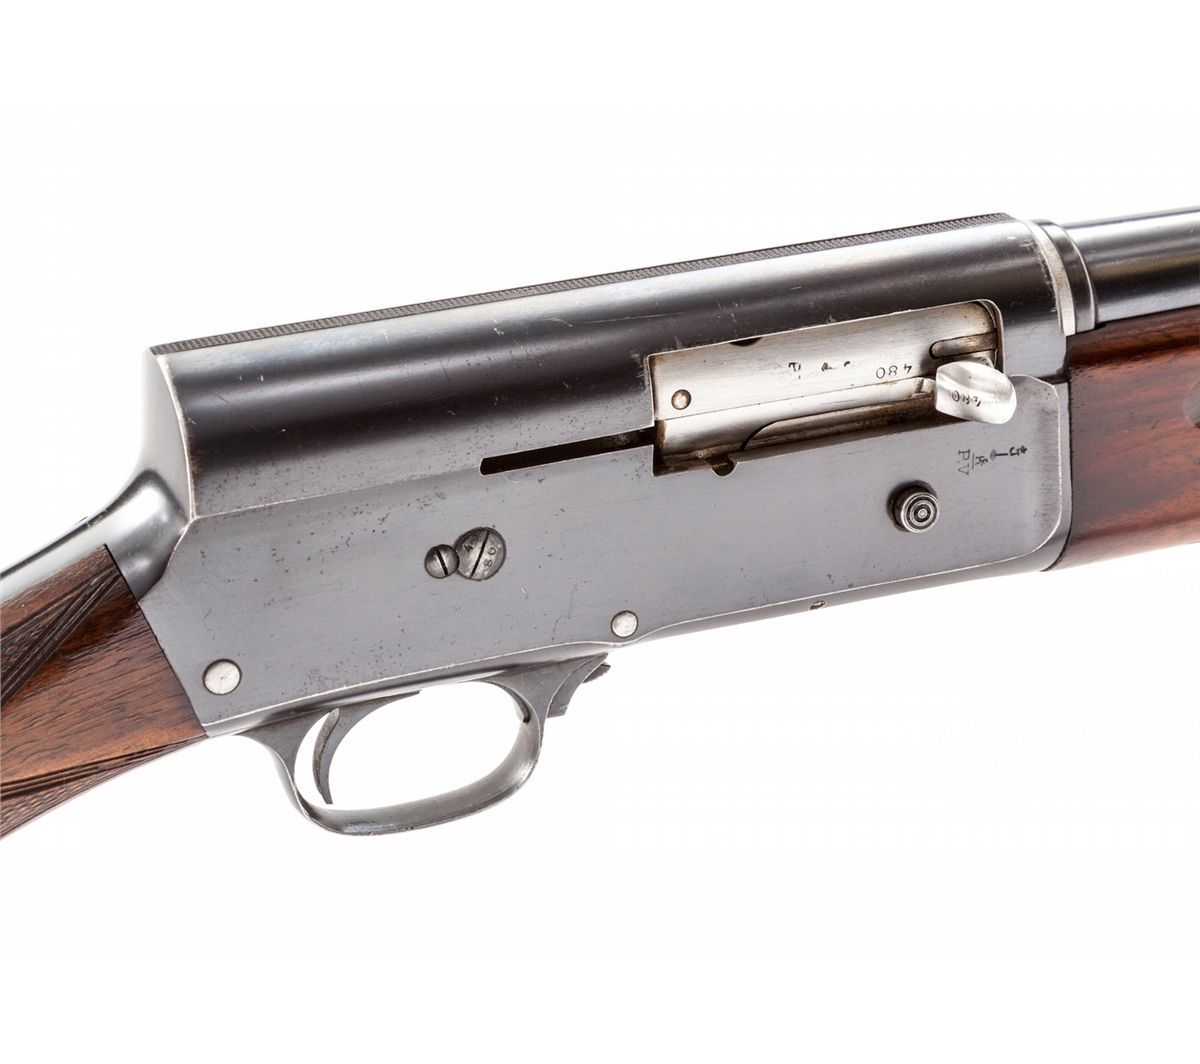 Belgian Browning Auto 5 Semi-Automatic Shotgun - Revivaler